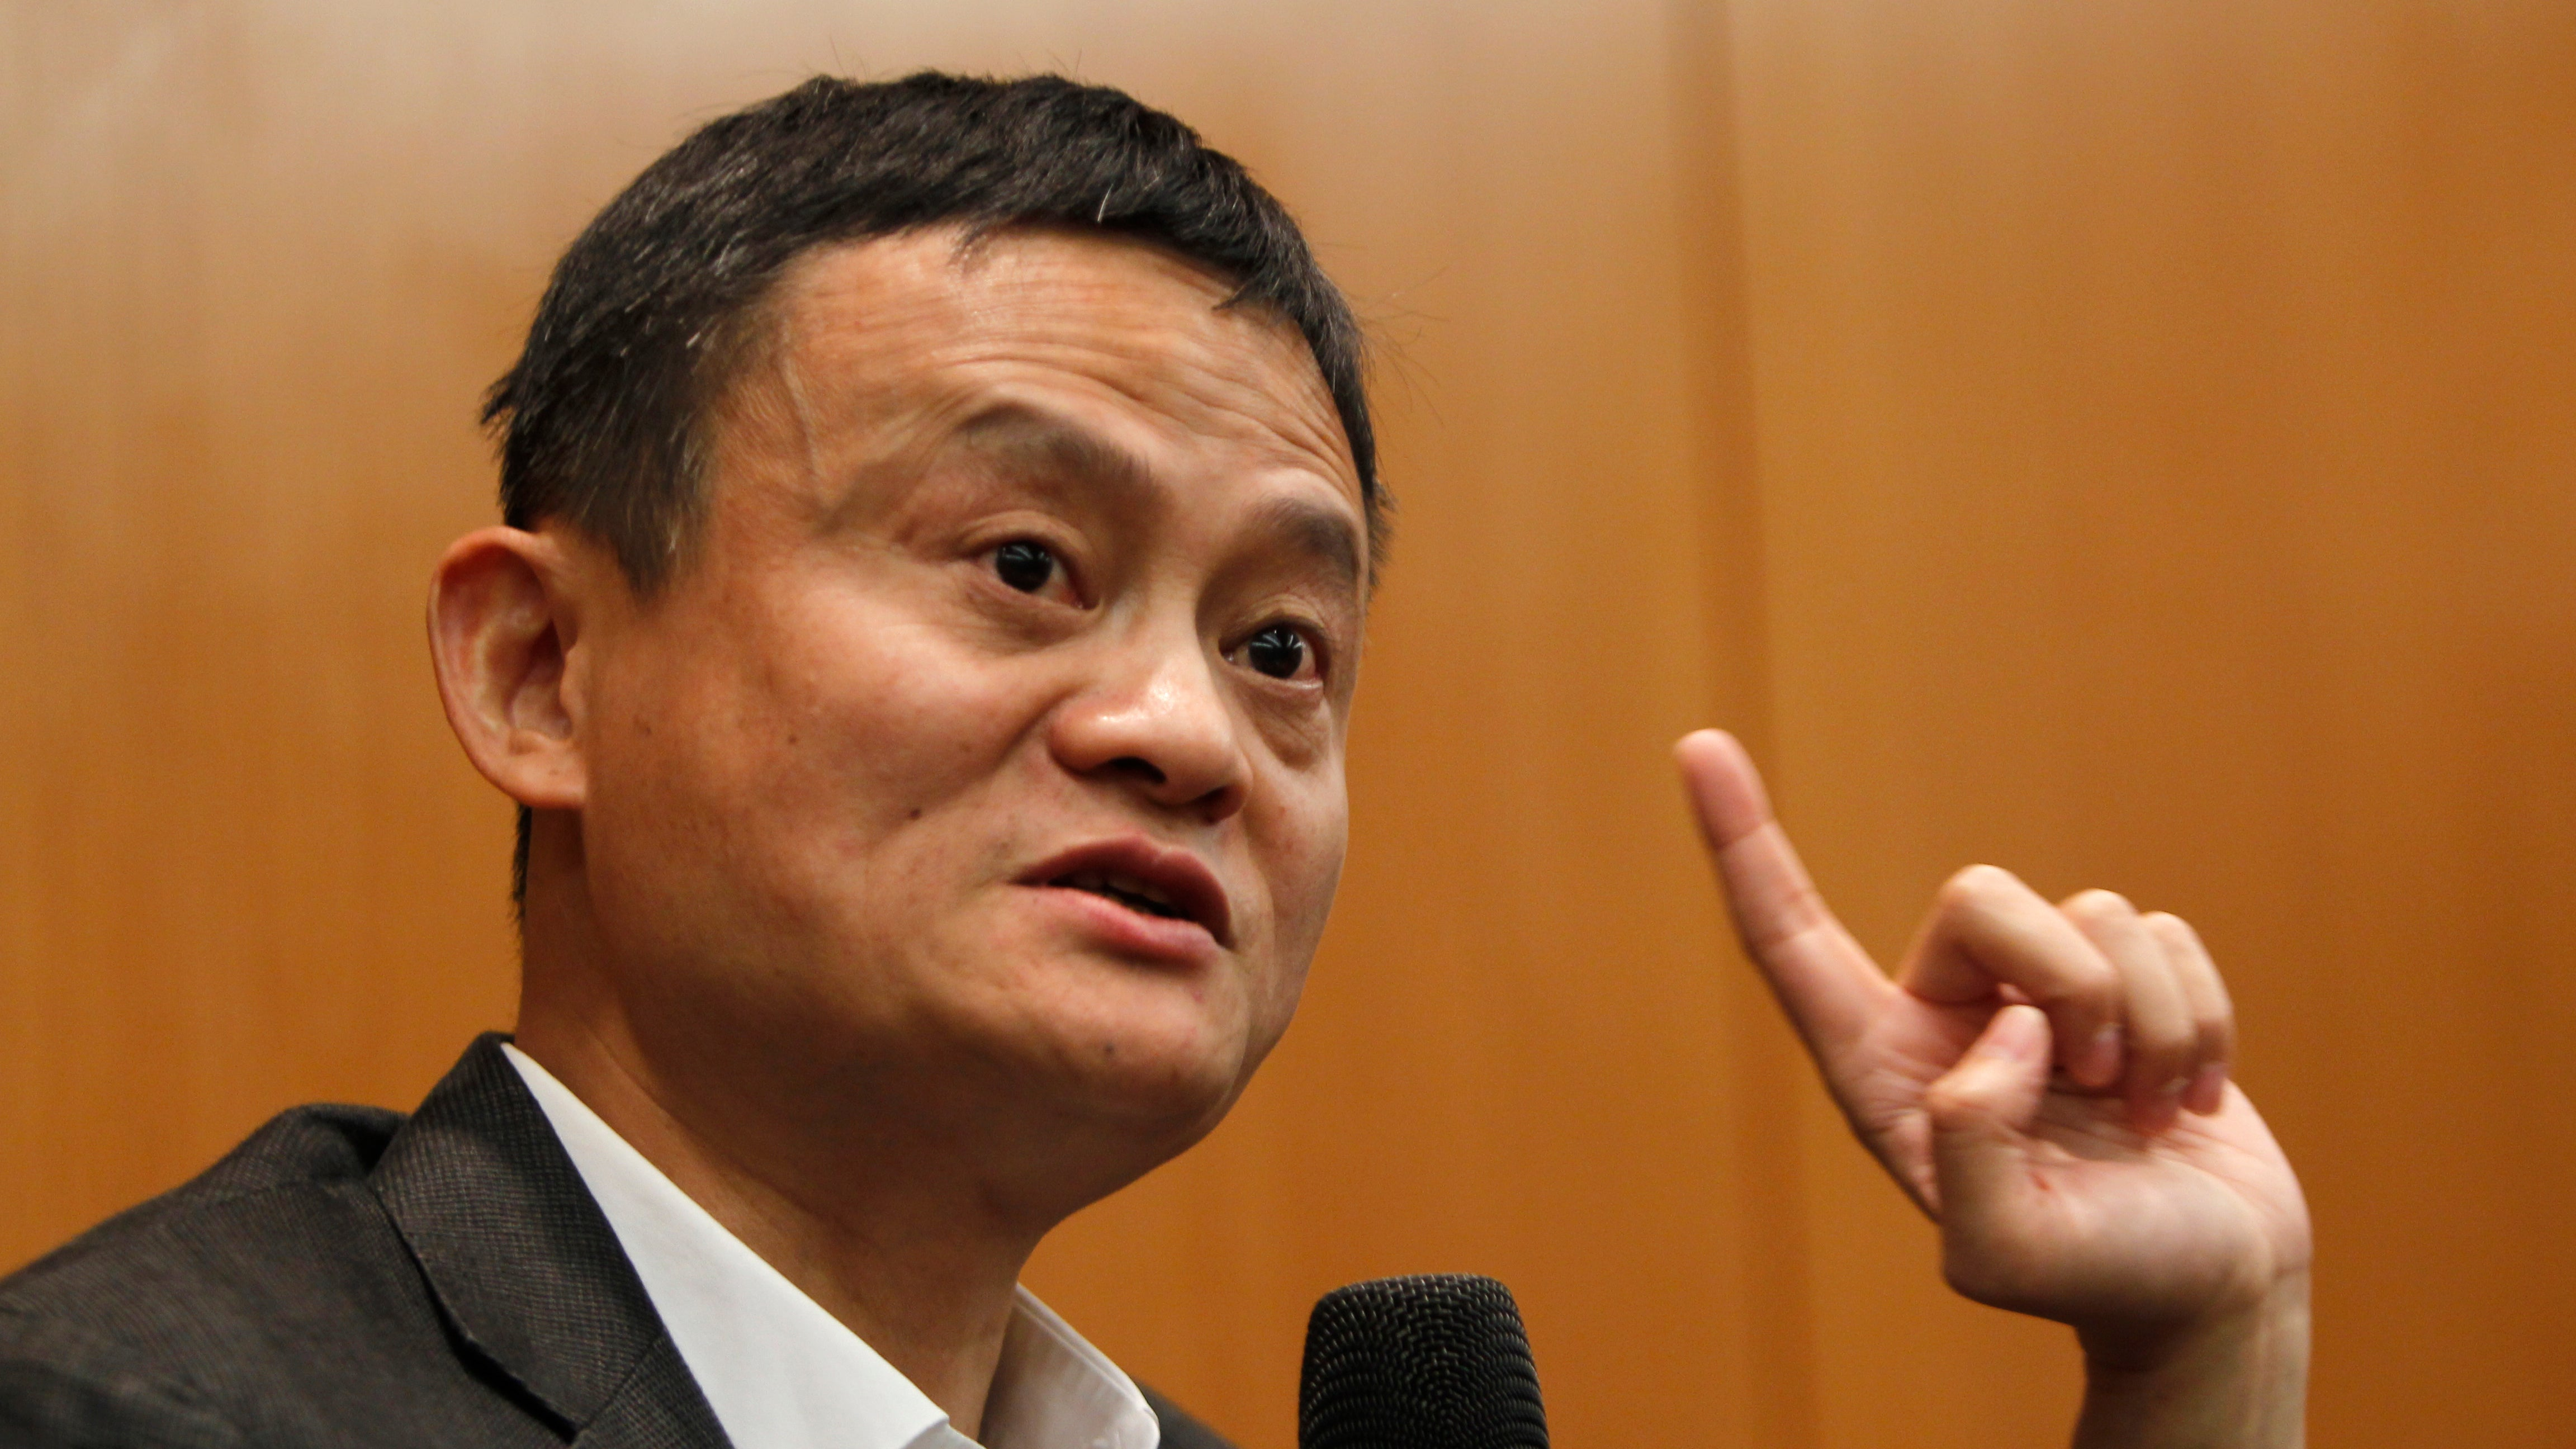 Alibaba Founder Jack Ma Adds 'Kung Fu Movie Star' To Resumé